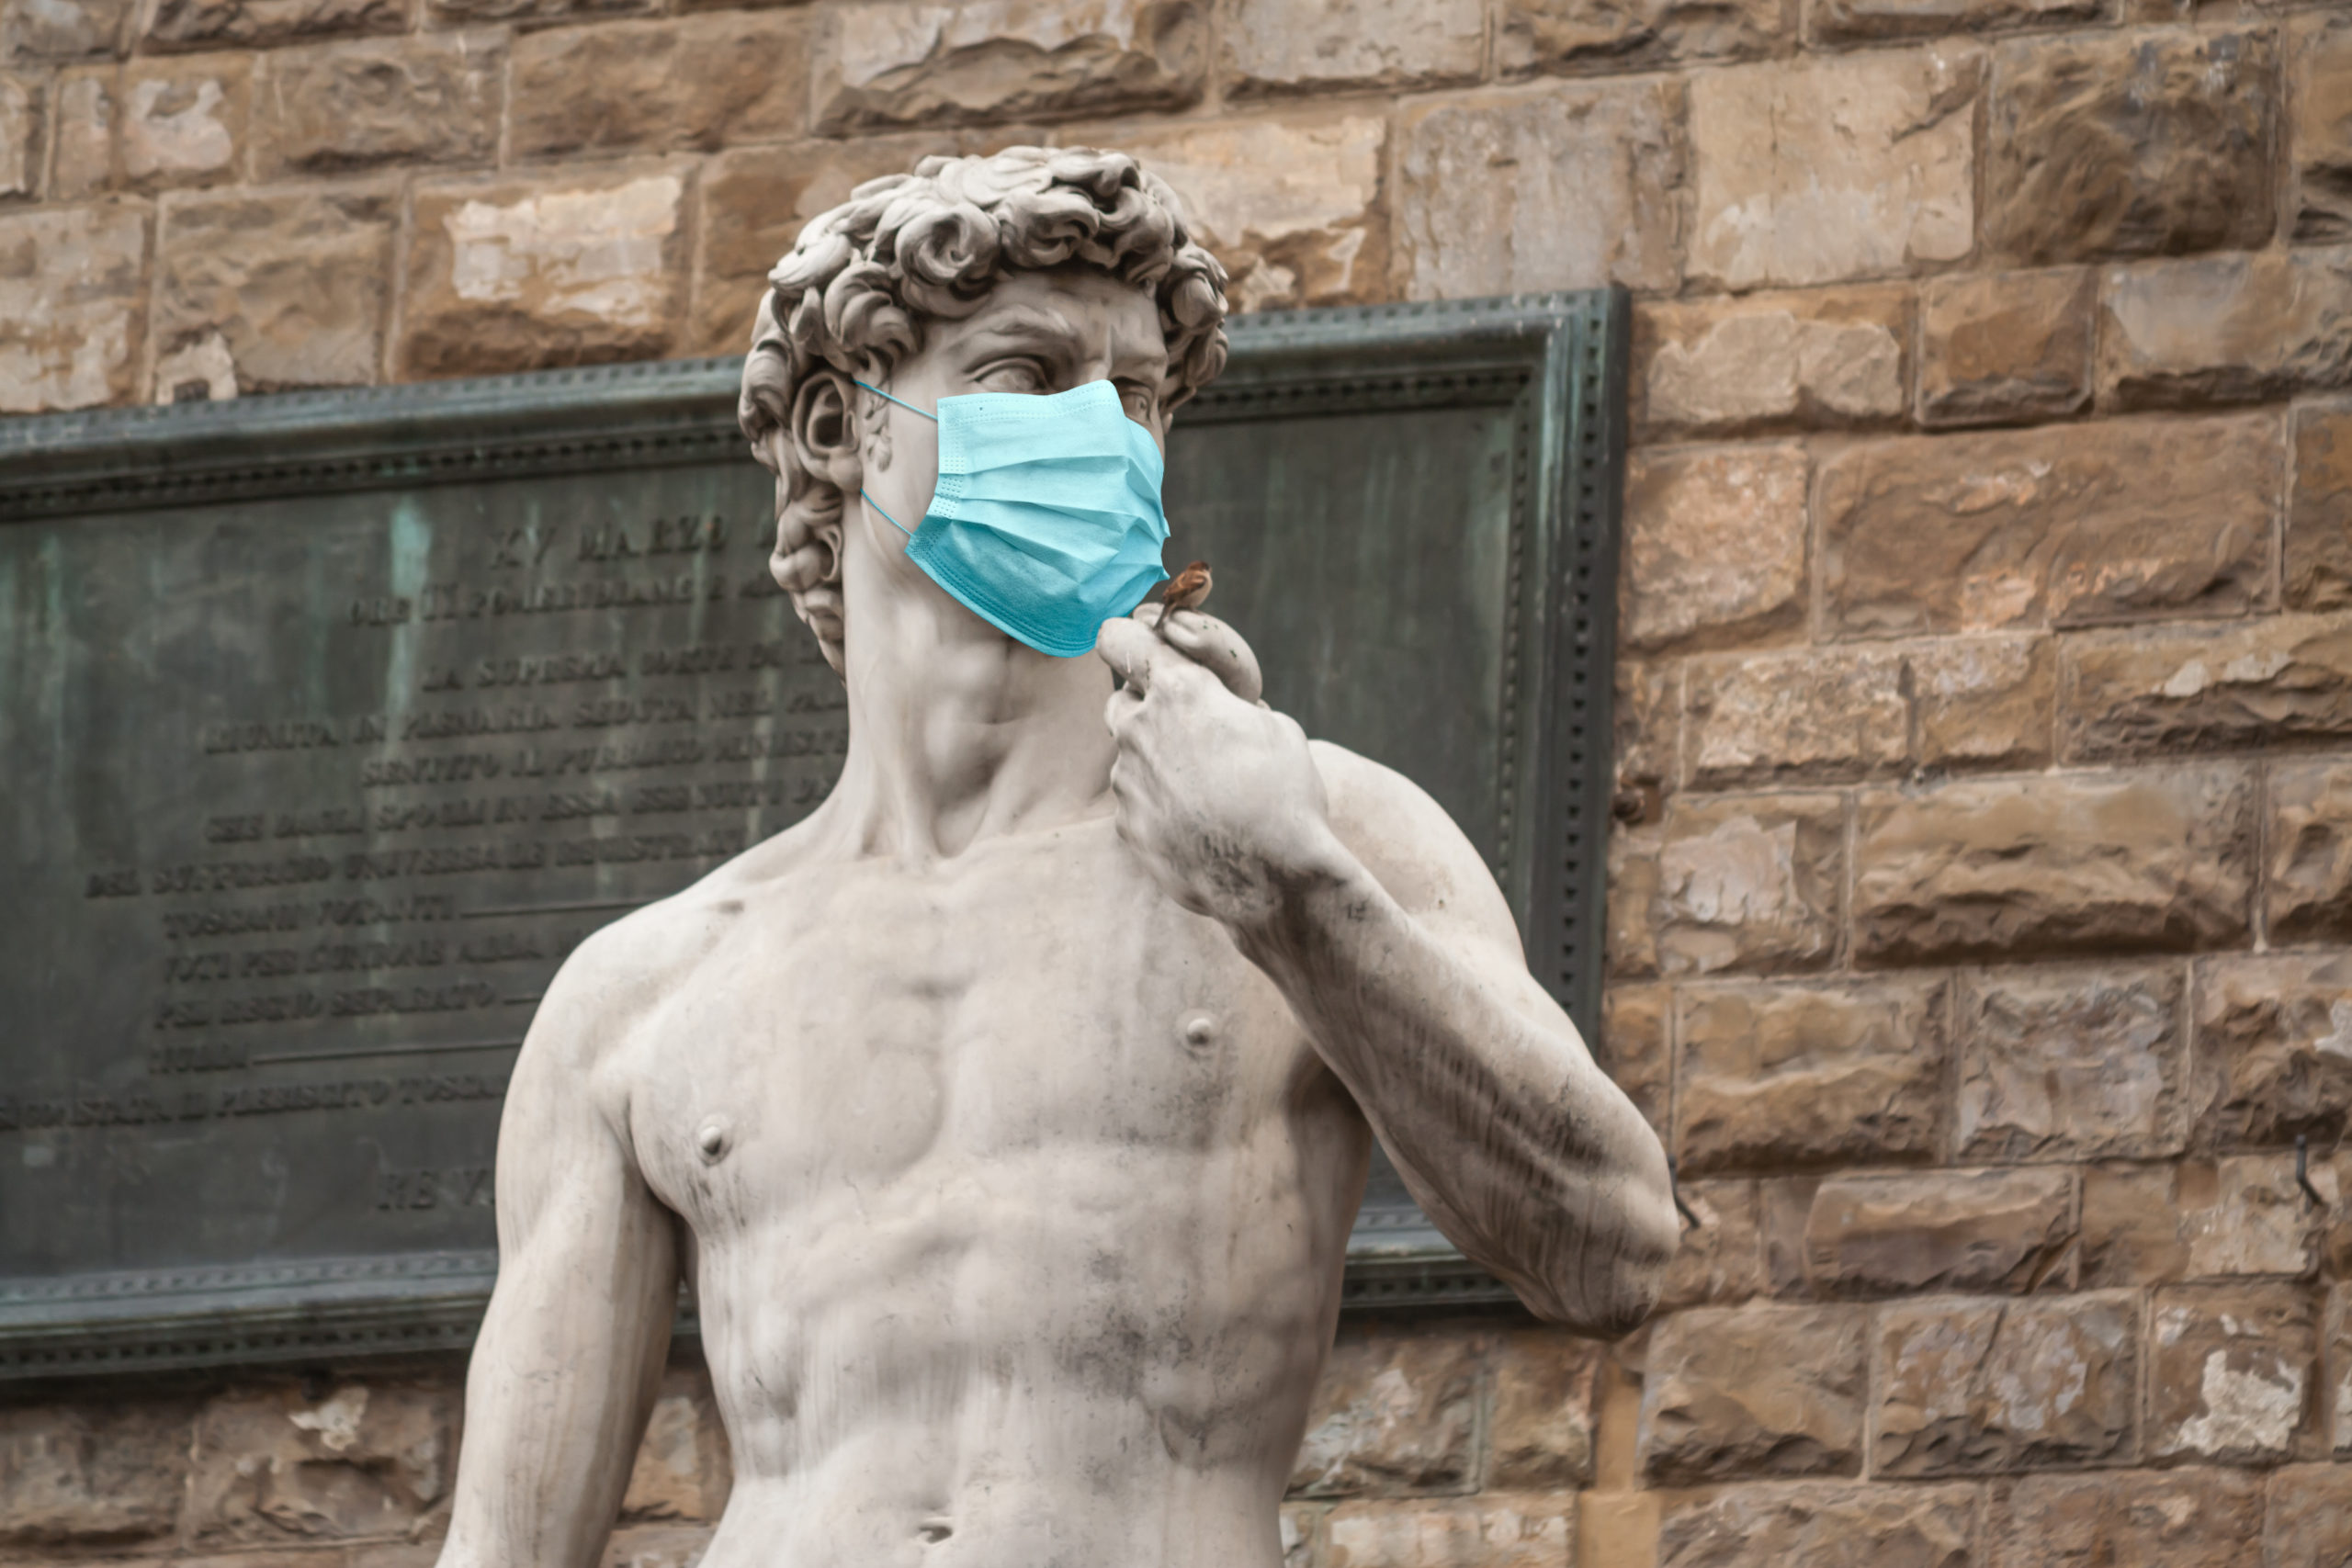 The Statue Of David in the Piazza della Signoria In Italy Wearing Blue Protective Medical Face Mask